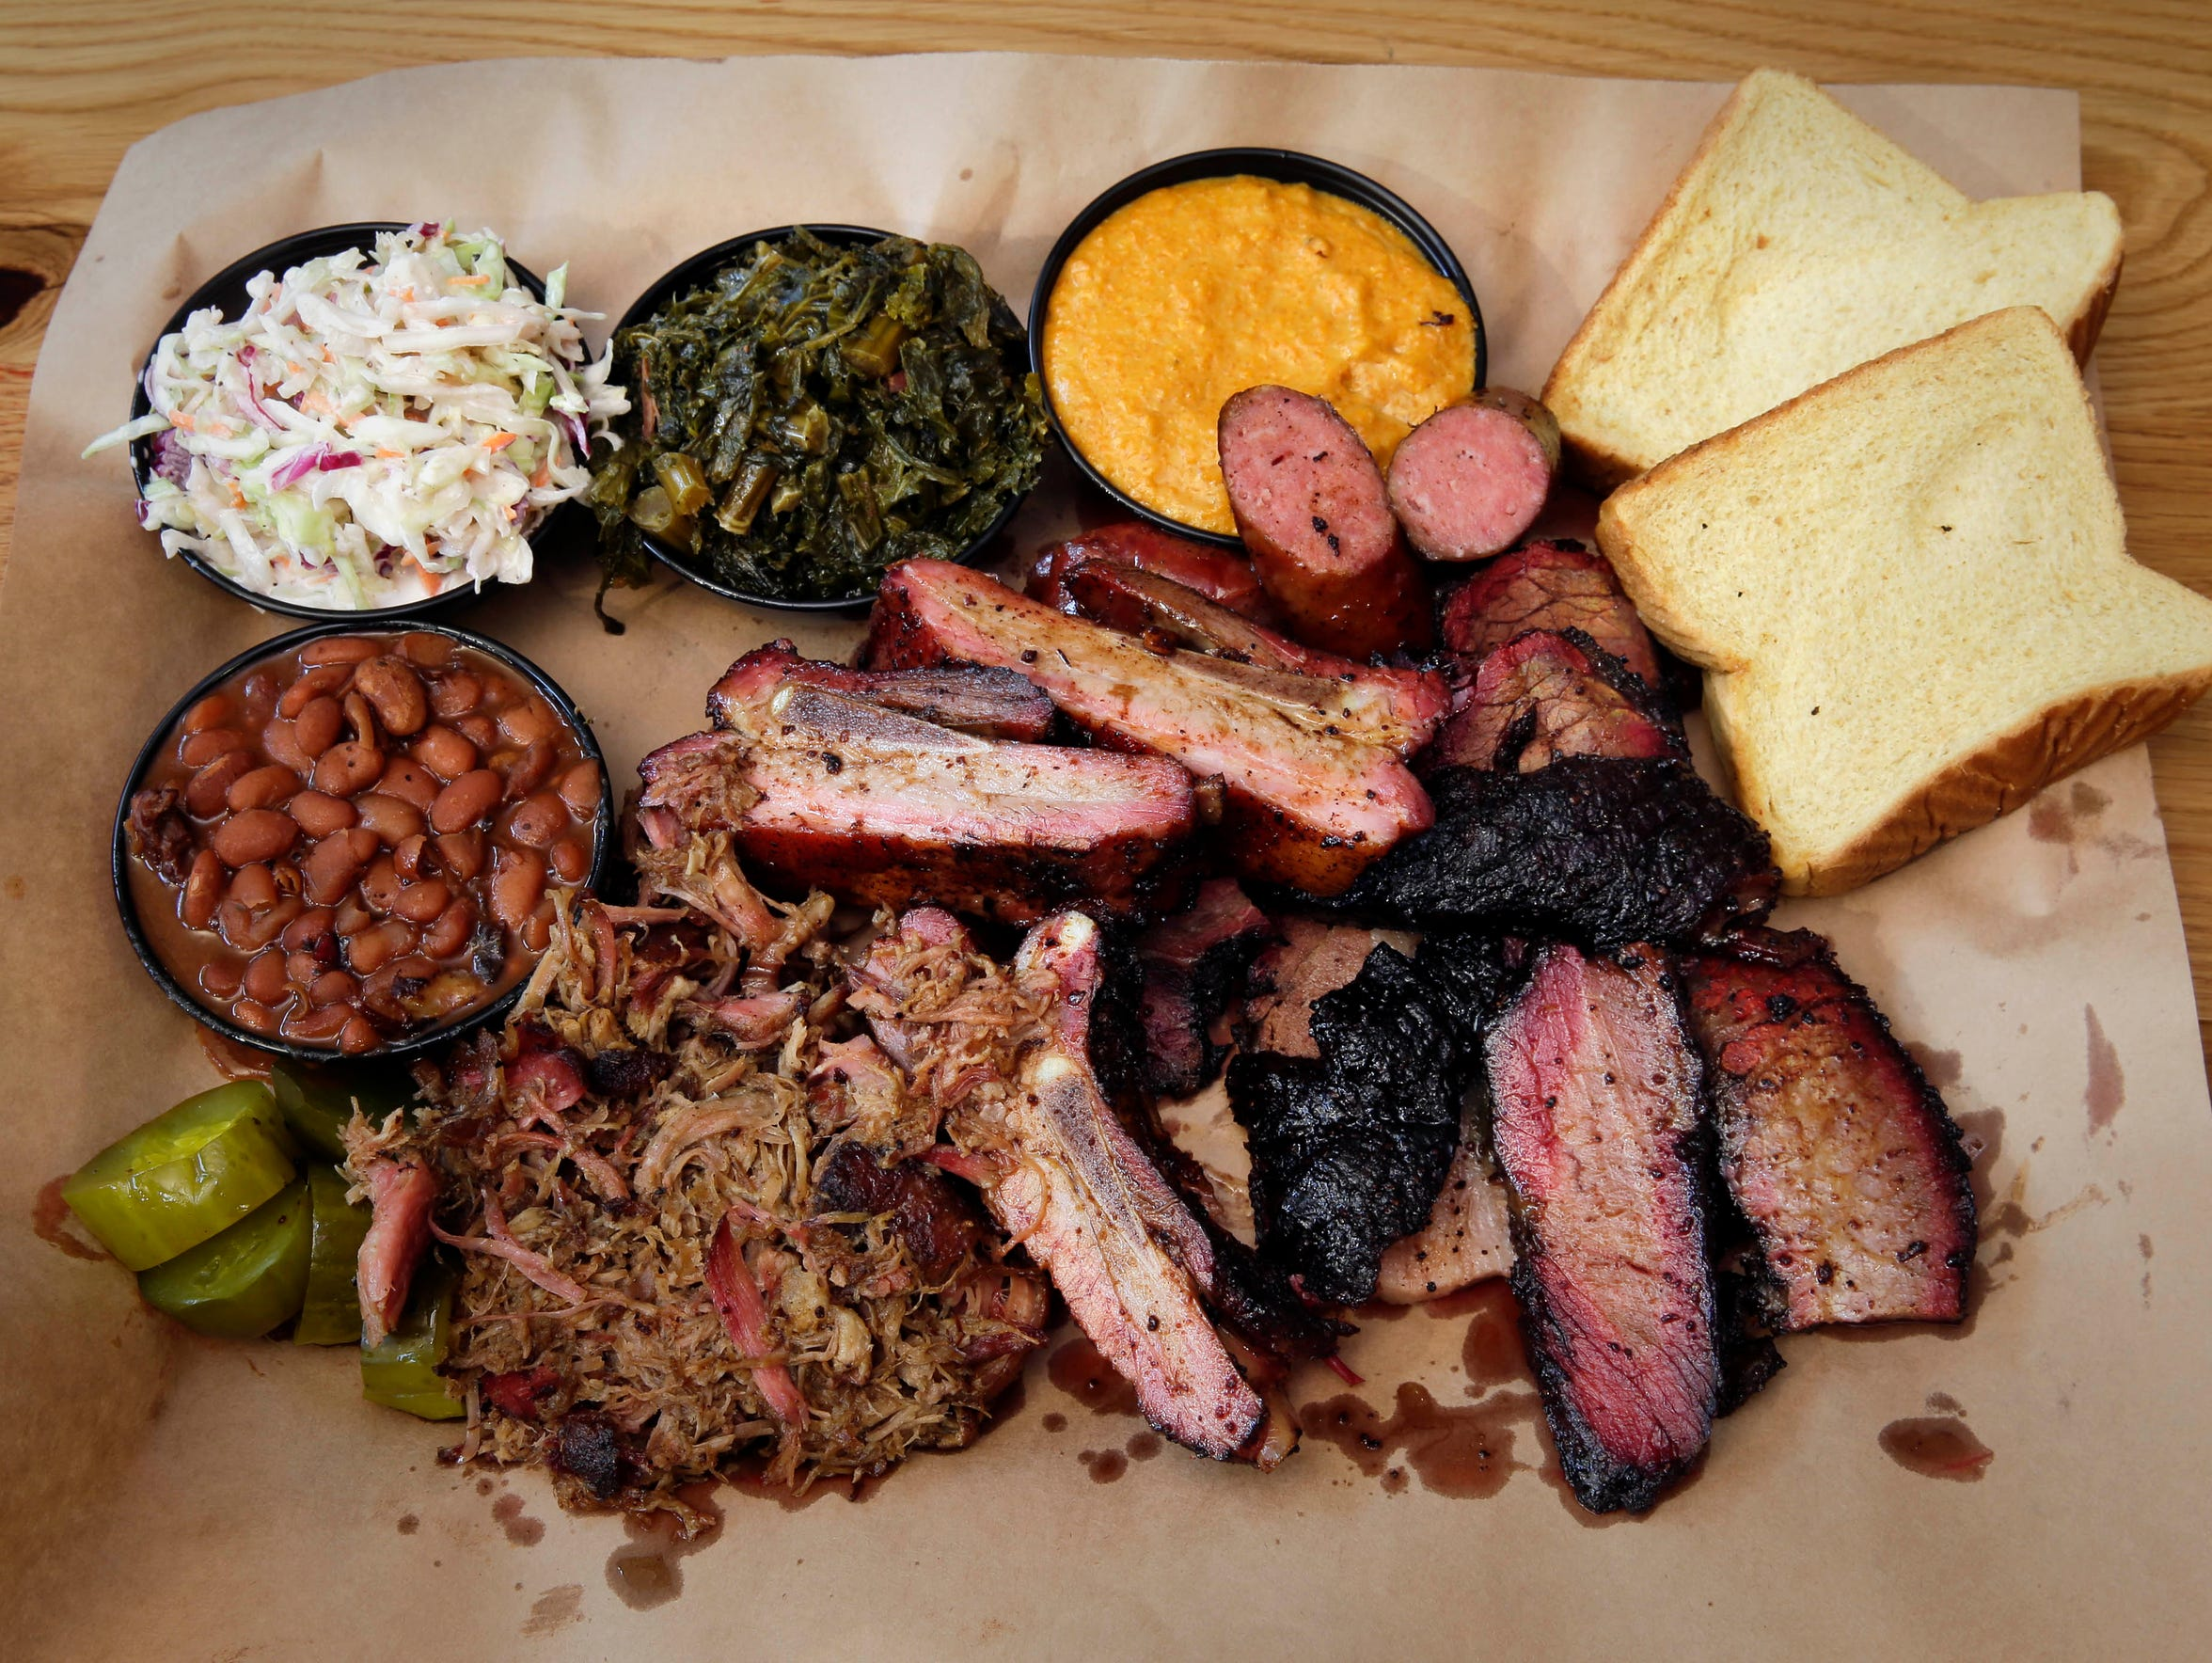 Iron Grate BBQ Co.'s menu includes brisket, sausage,